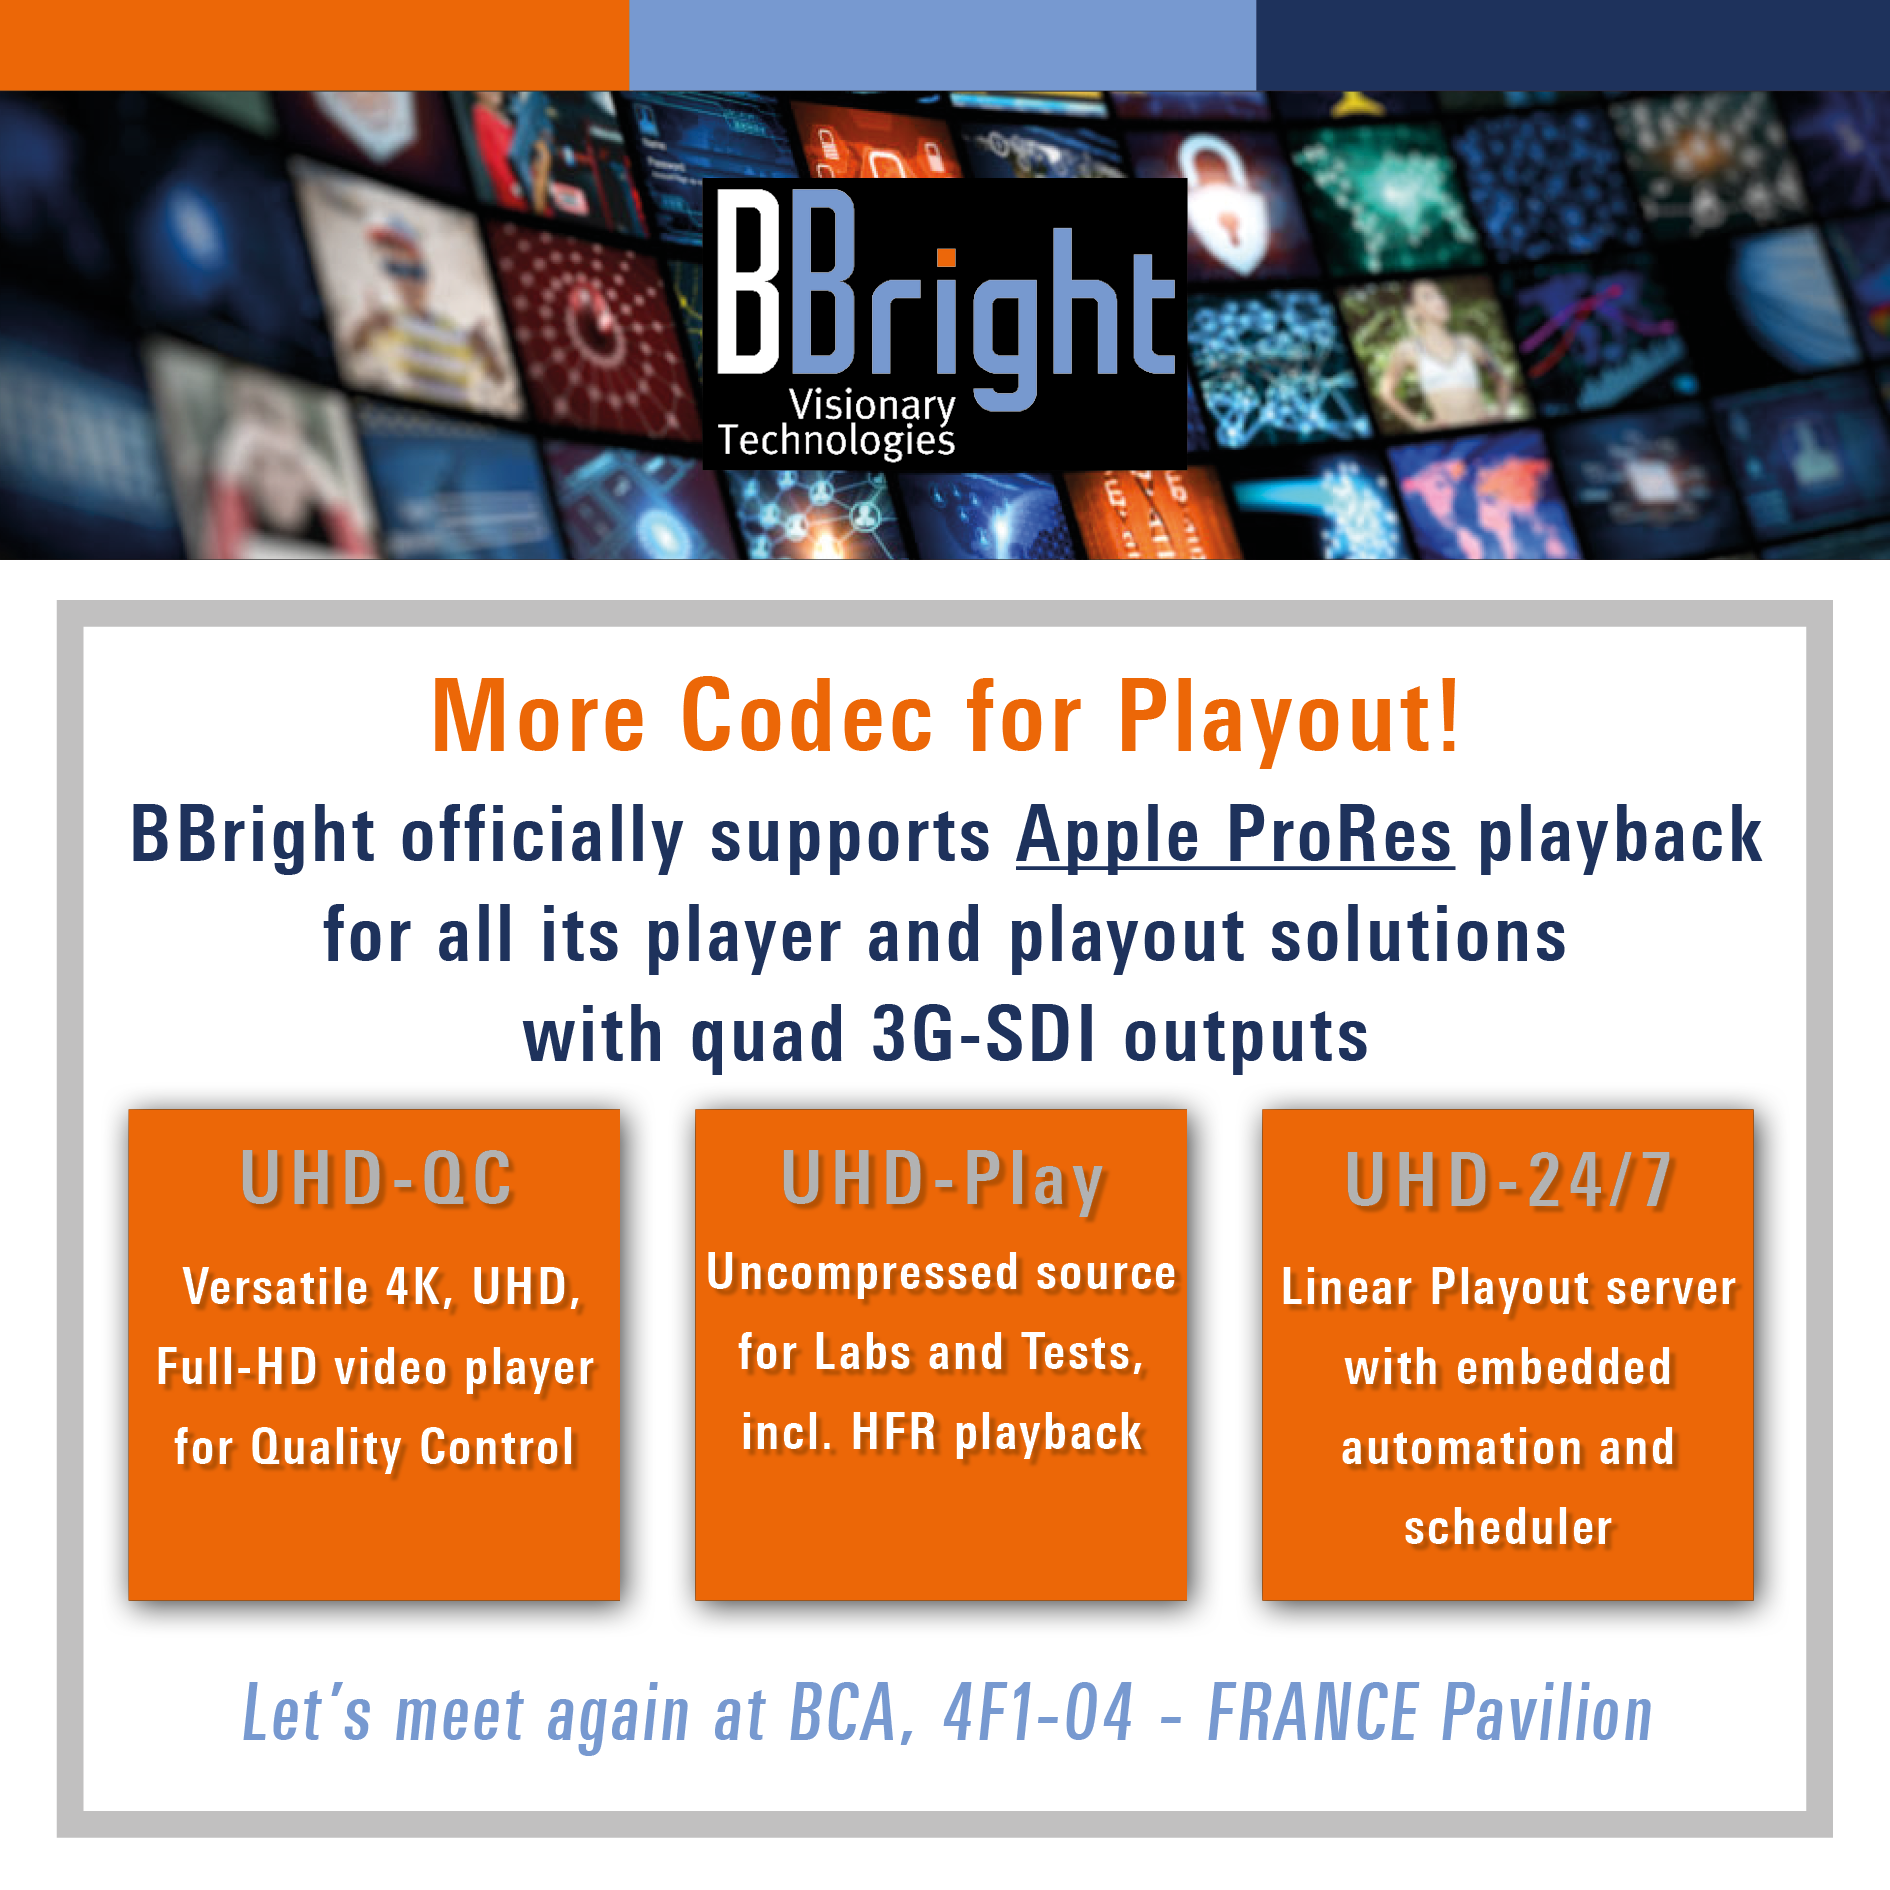 More Codec support for Playout! - BBright